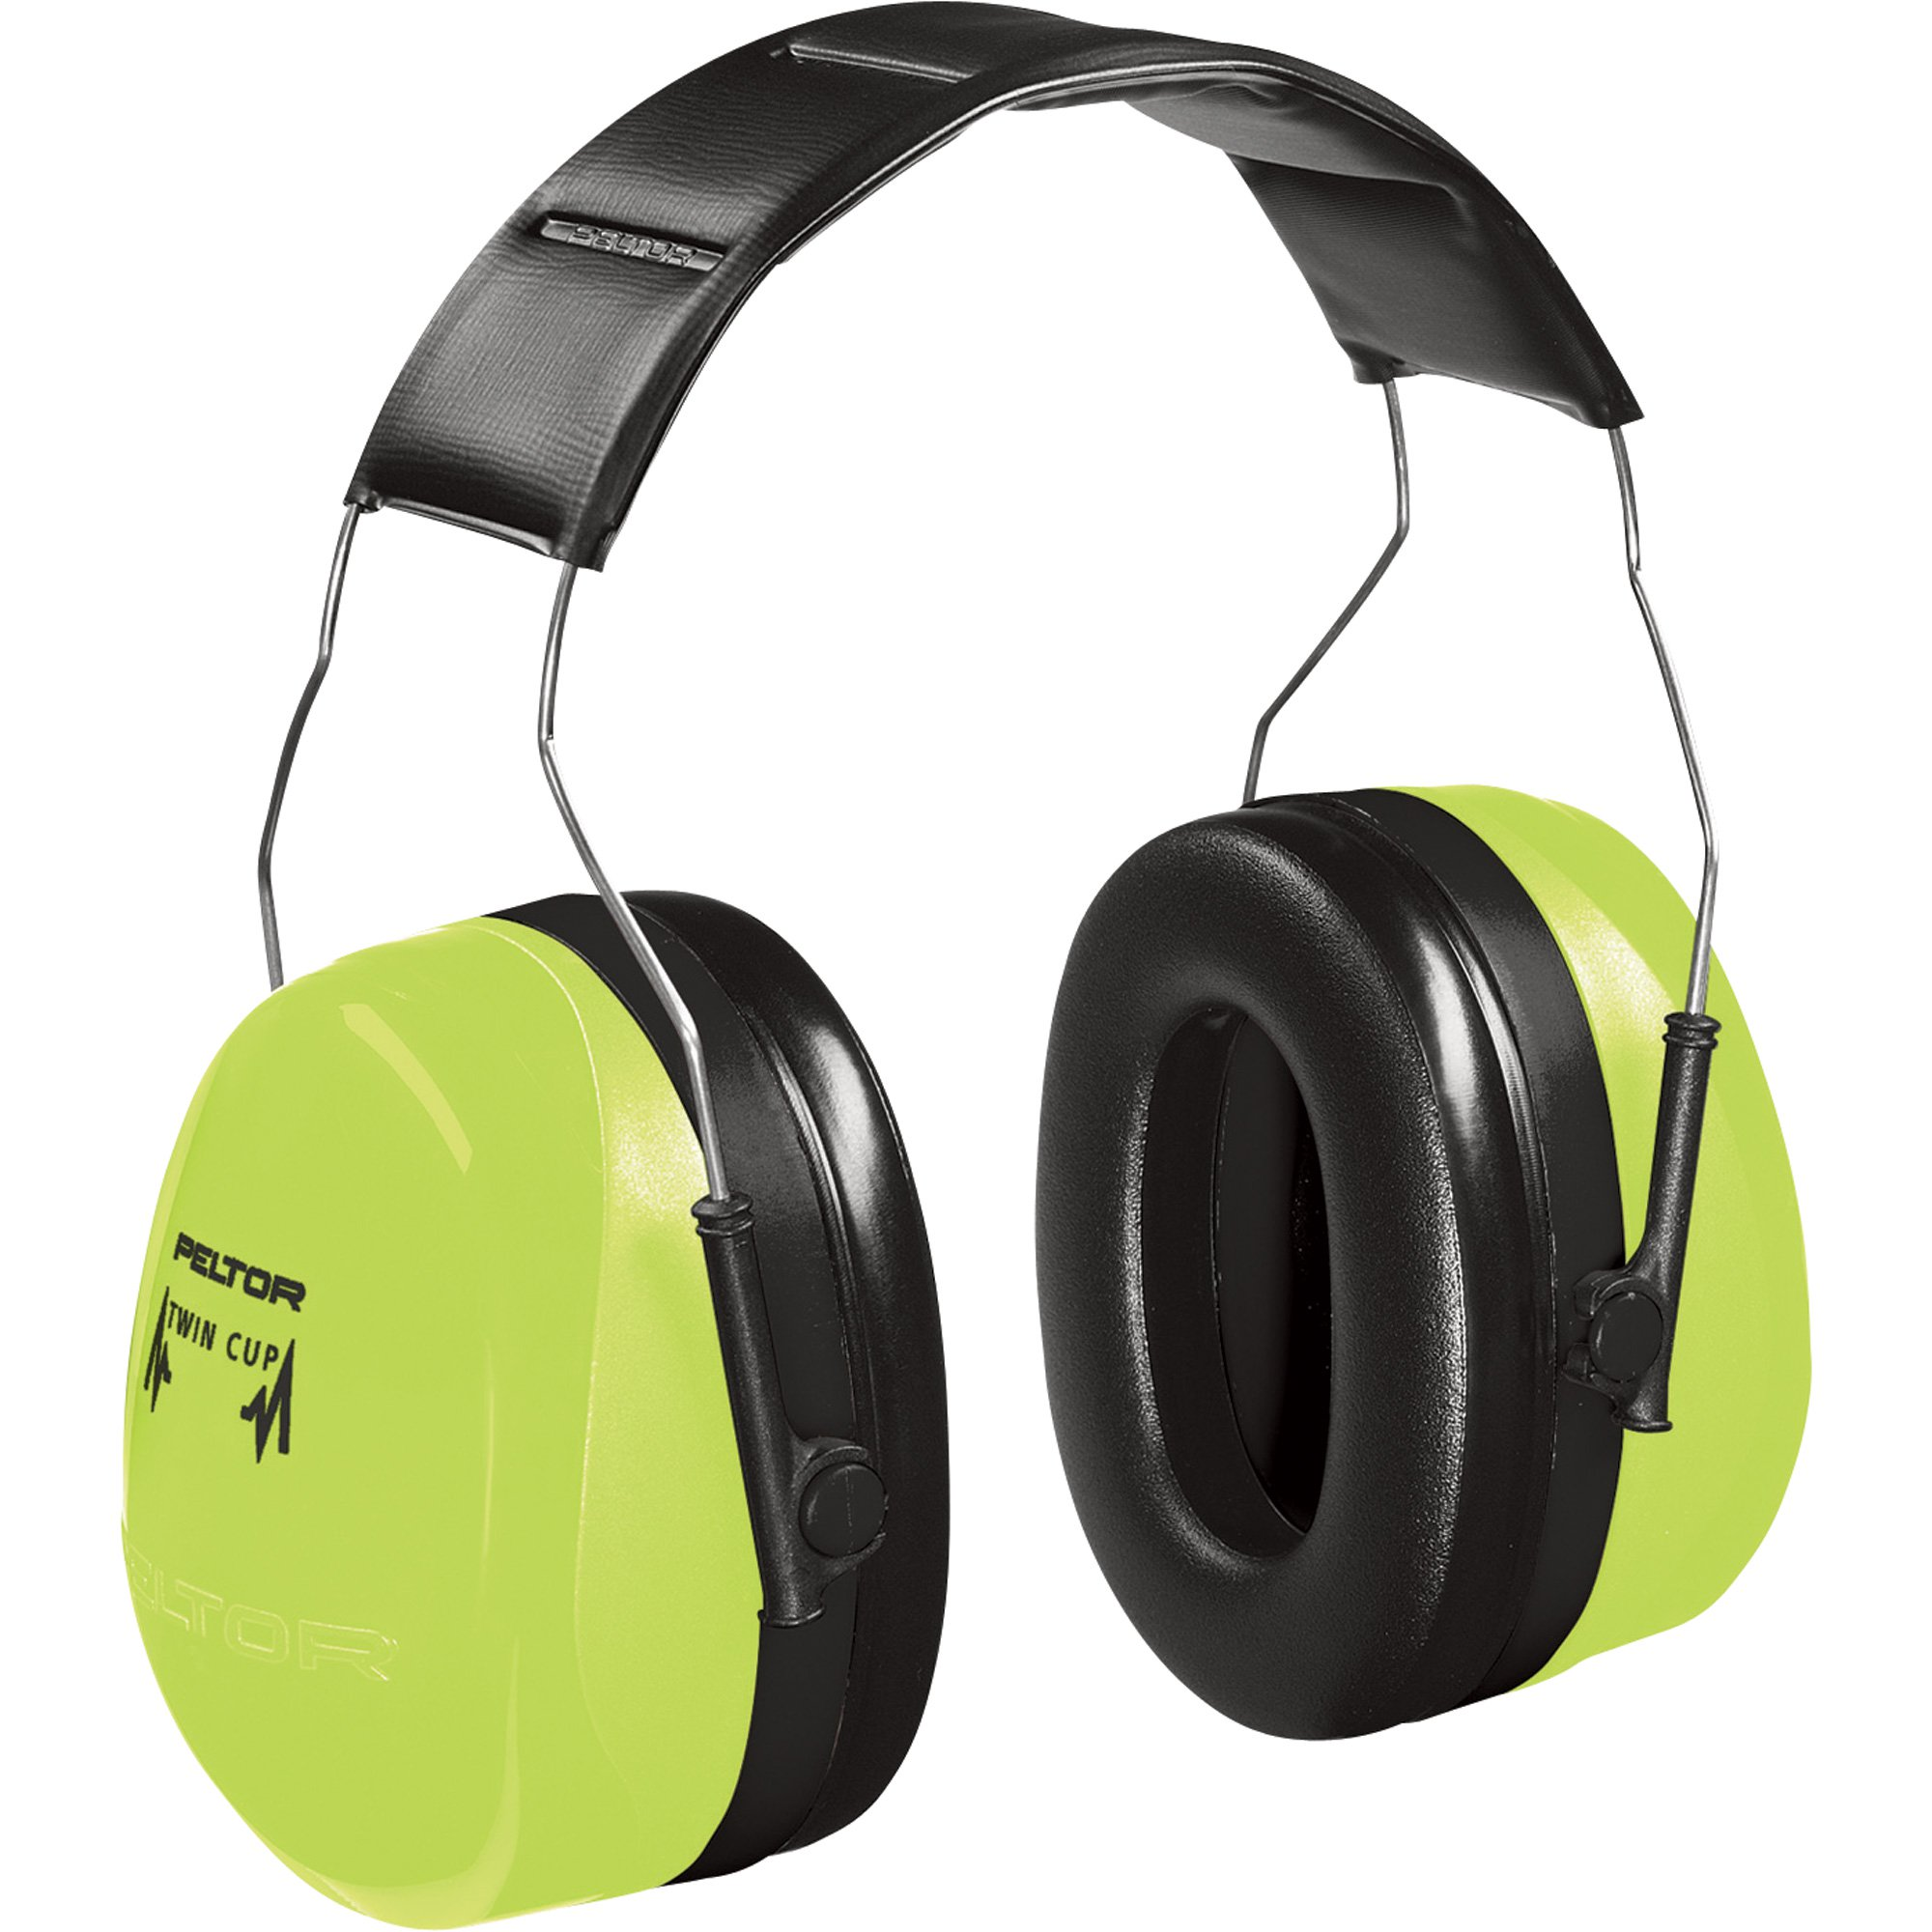 Hearing protection photo